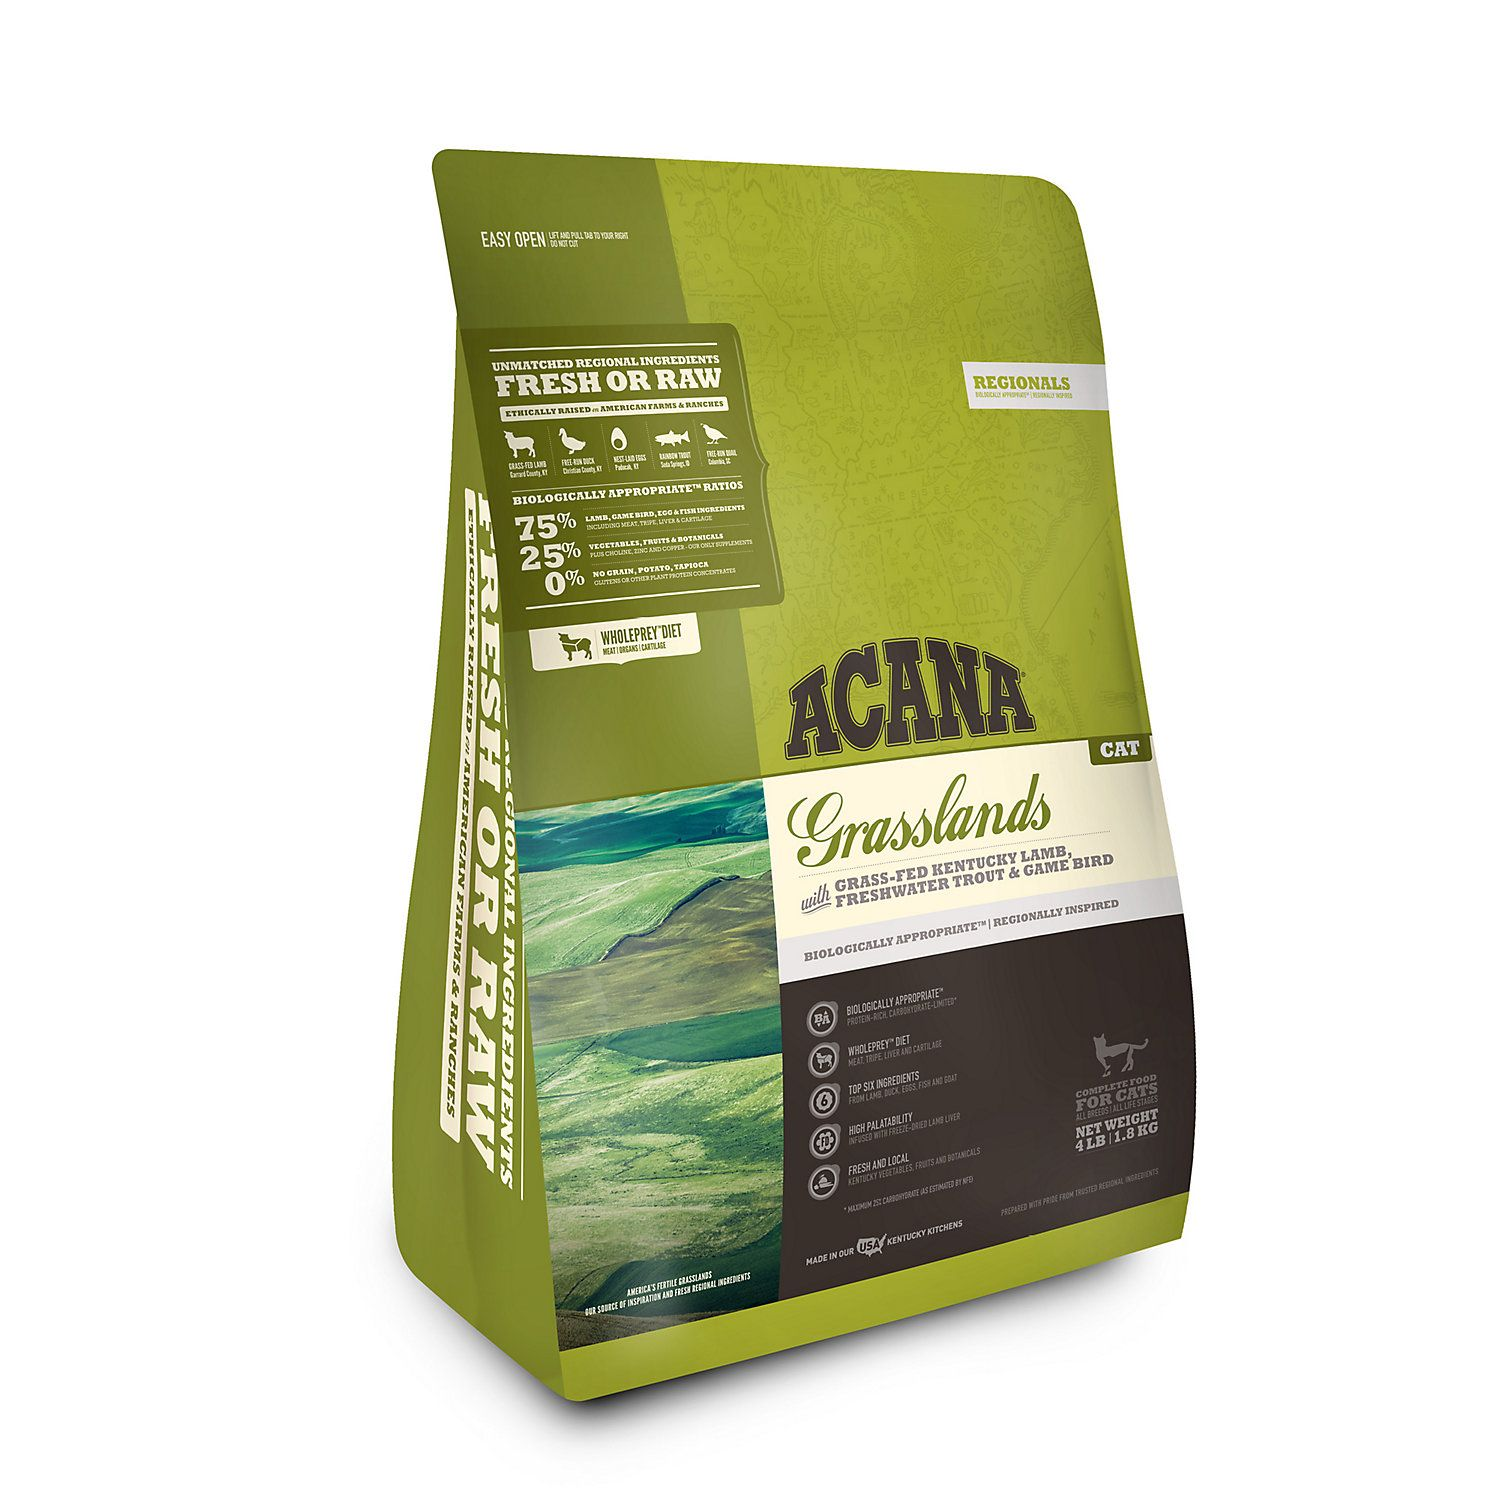 Acana Grasslands Dry Cat Food 4 Lbs Dry Dog Food Dry Cat Food